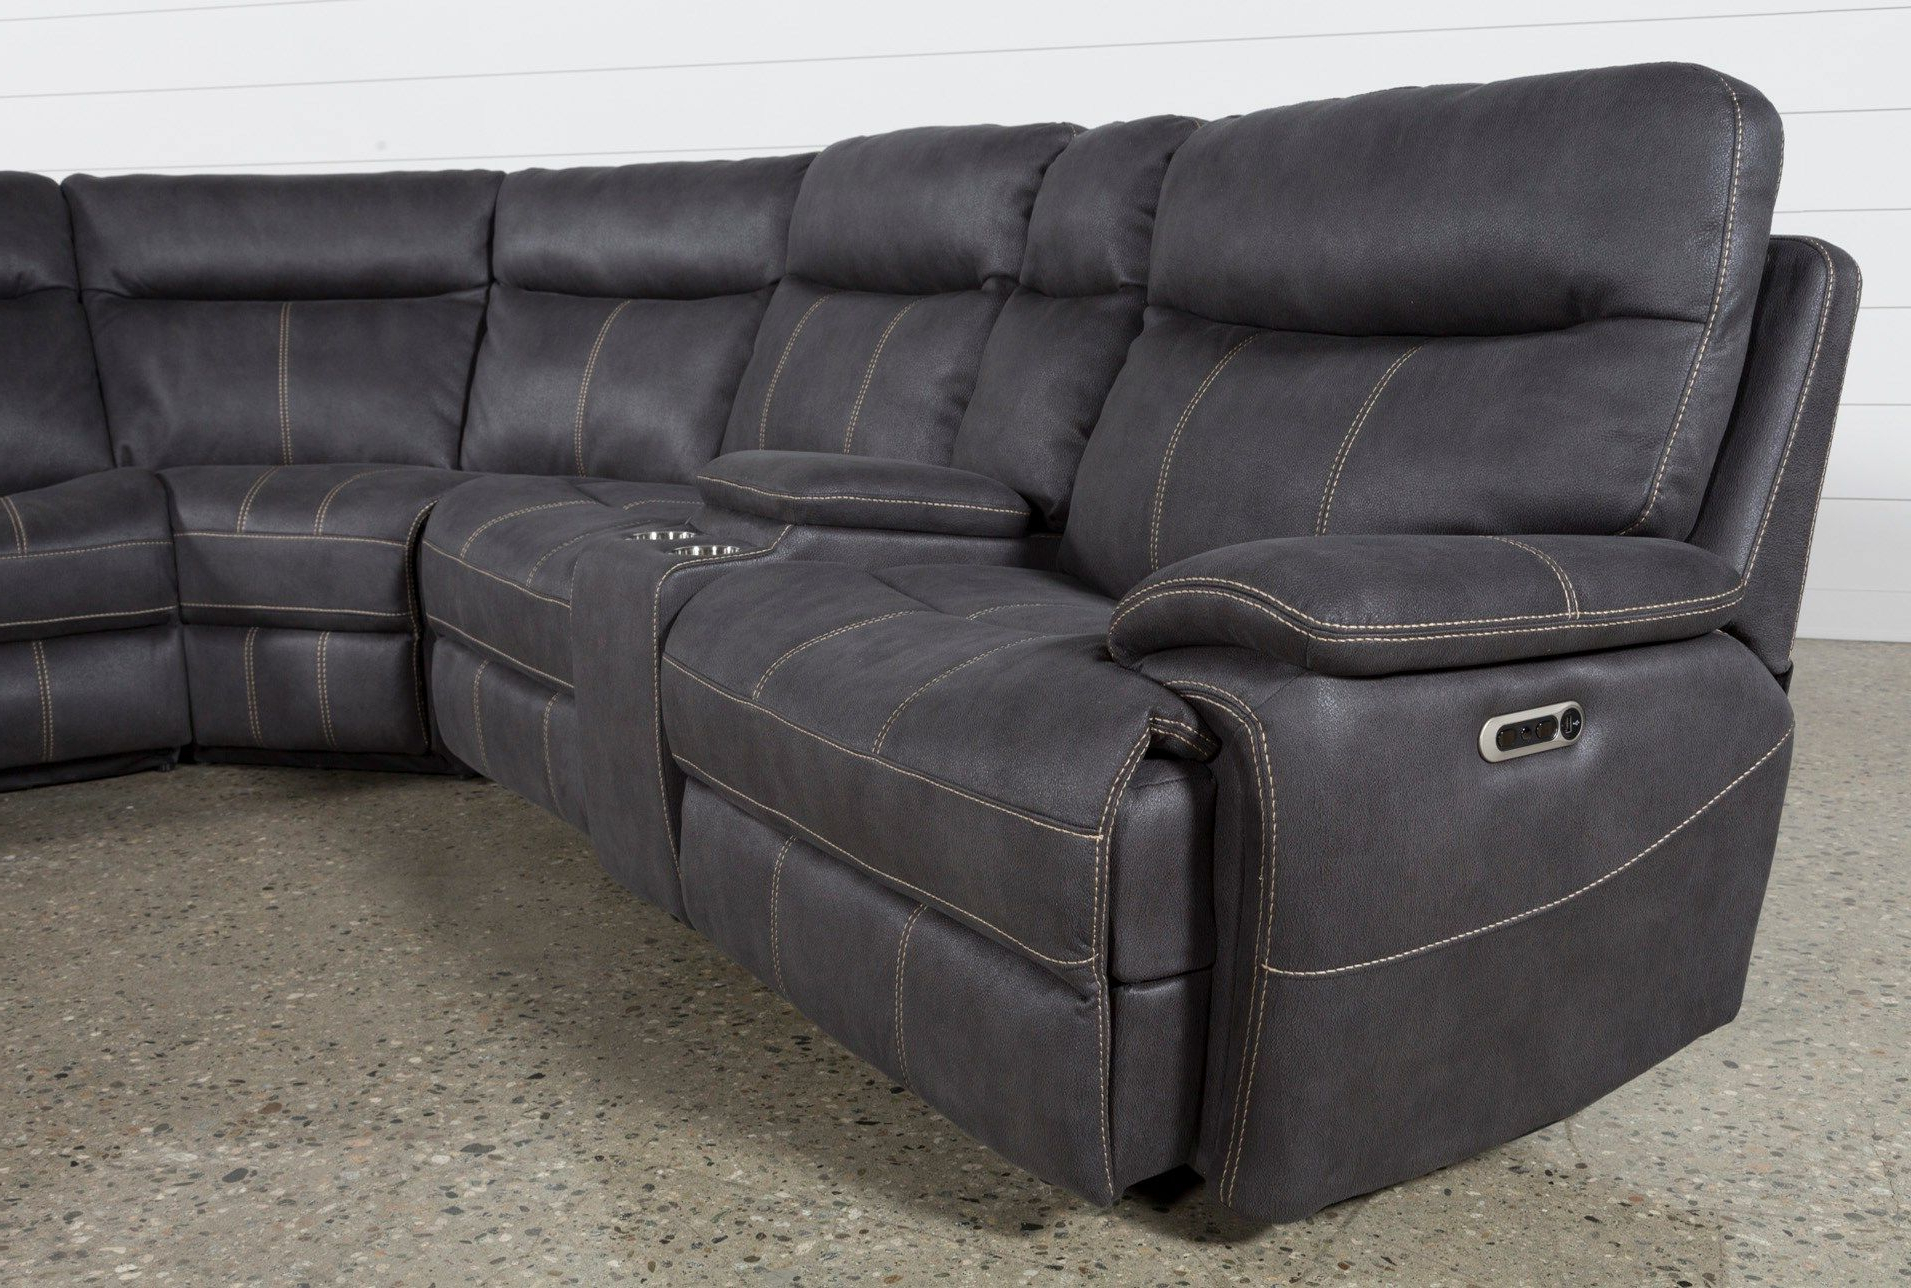 Favorite Denali Charcoal Grey 6 Piece Reclining Sectionals With 2 Power Headrests Regarding Denali Charcoal Grey 6 Piece Reclining Sectional W/2 Power Headrests (View 6 of 20)